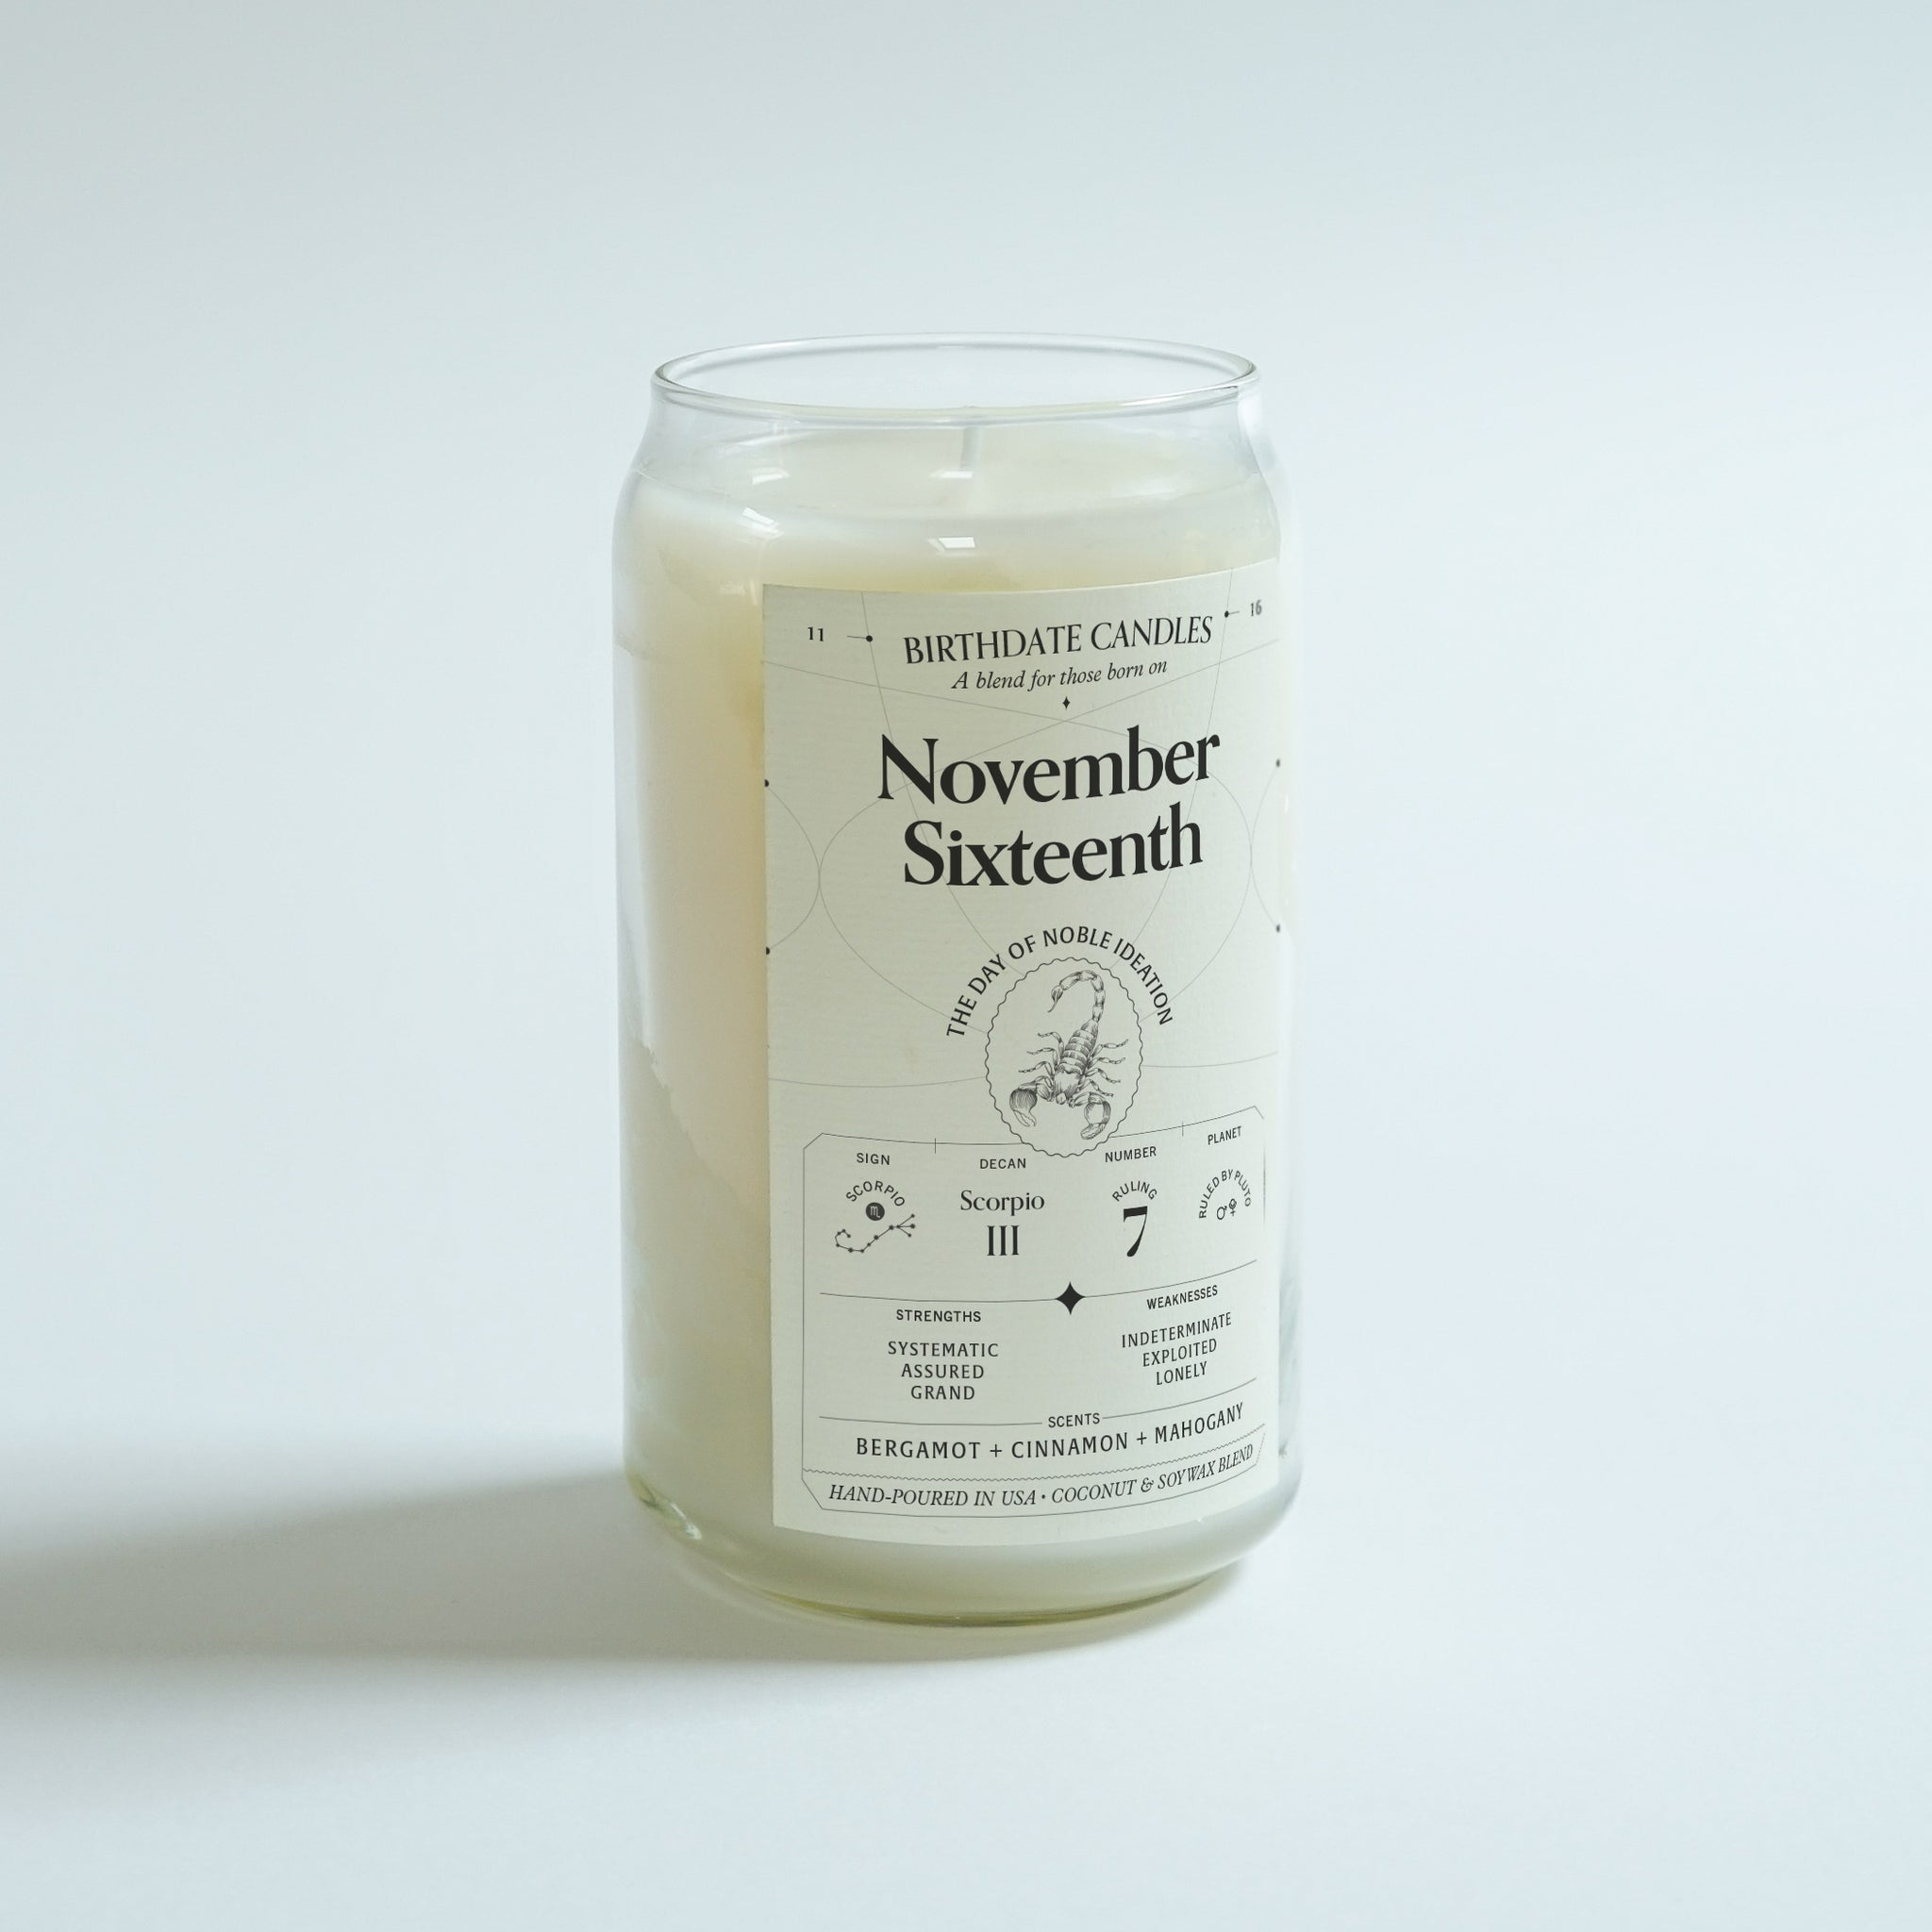 The November Sixteenth Birthday Candle